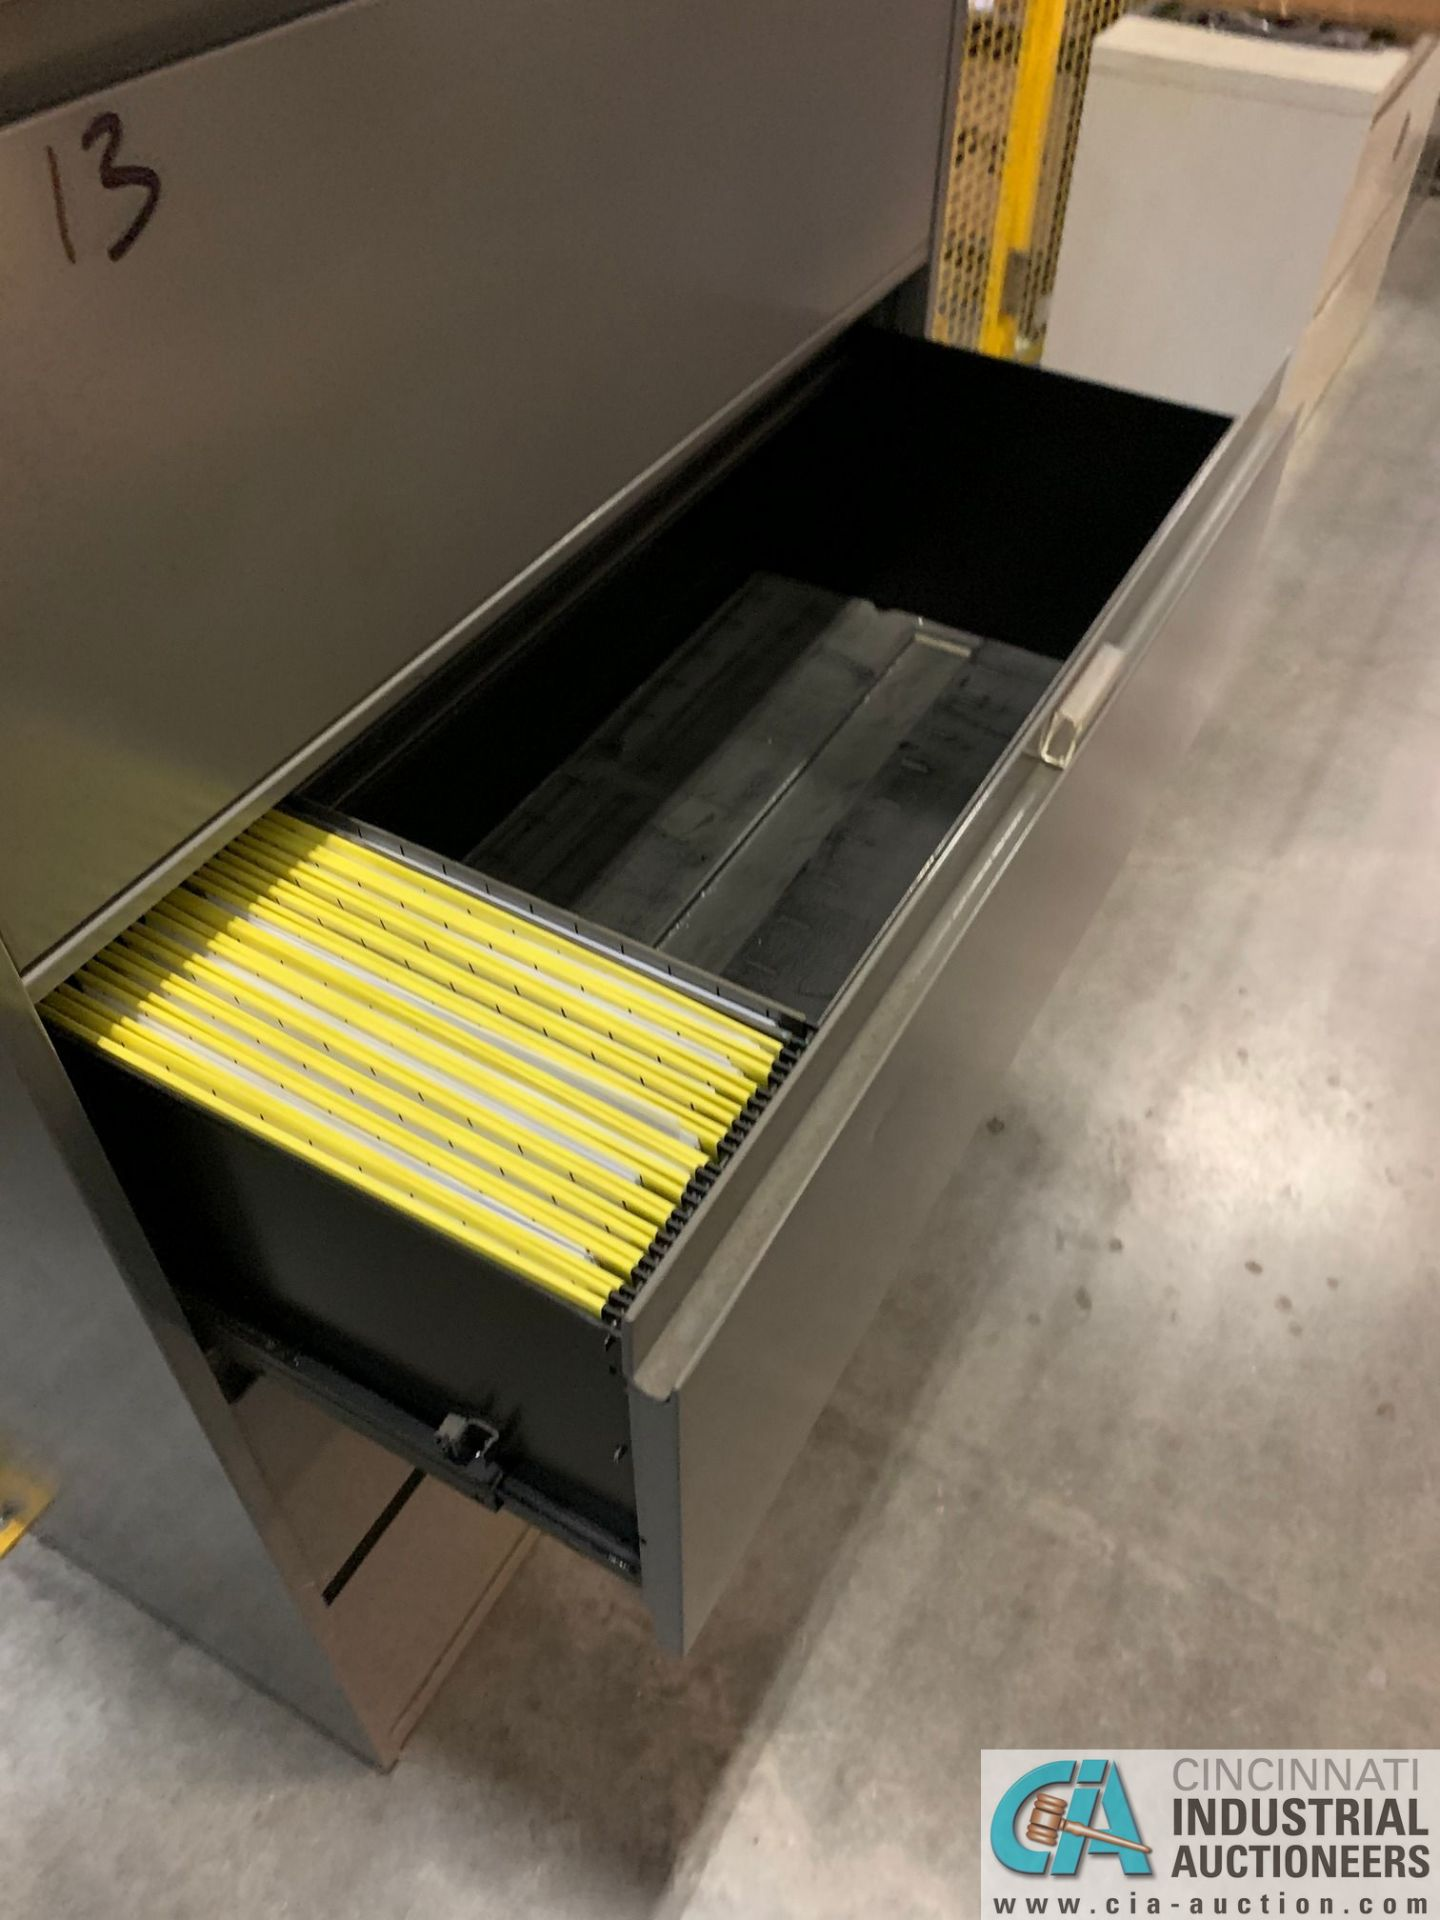 FOUR-DRAWER STEELCASE LATERAL FILE CABINETS (NO CONTENTS) (5400 OAKLEY INDUSTRIAL BLVD., FAIRBURN, - Image 7 of 9